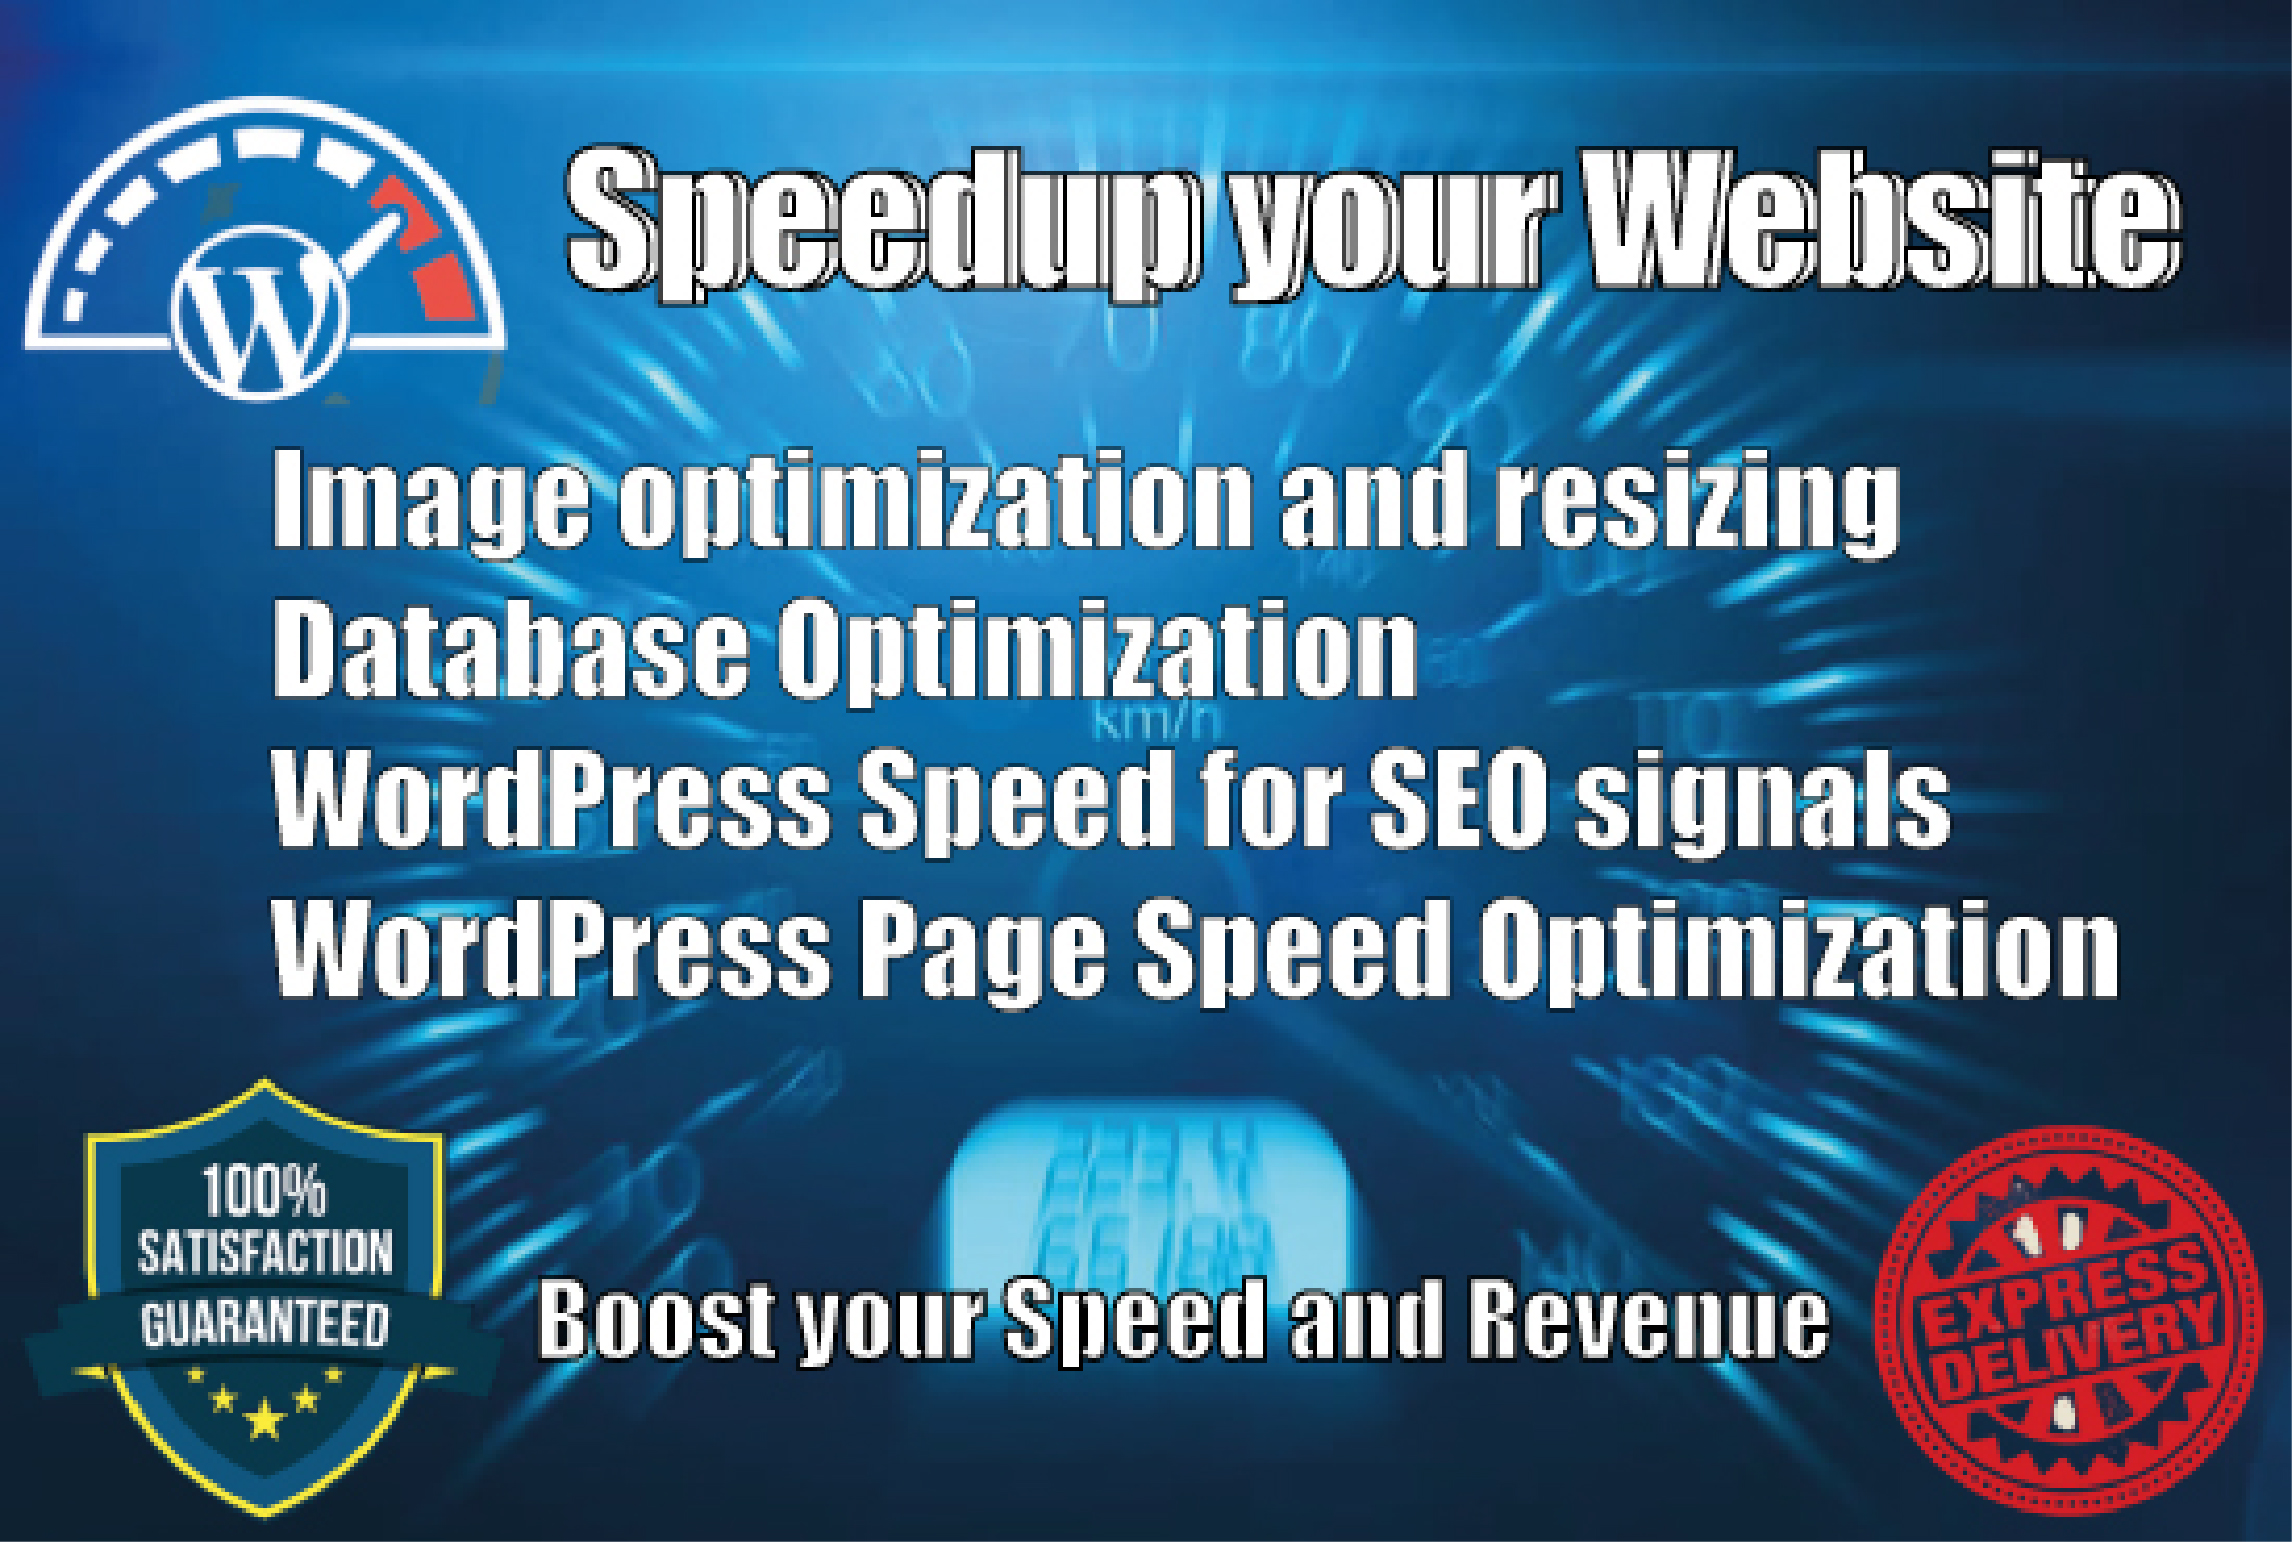 I will optimize website speed and fix the reason for sluggishness